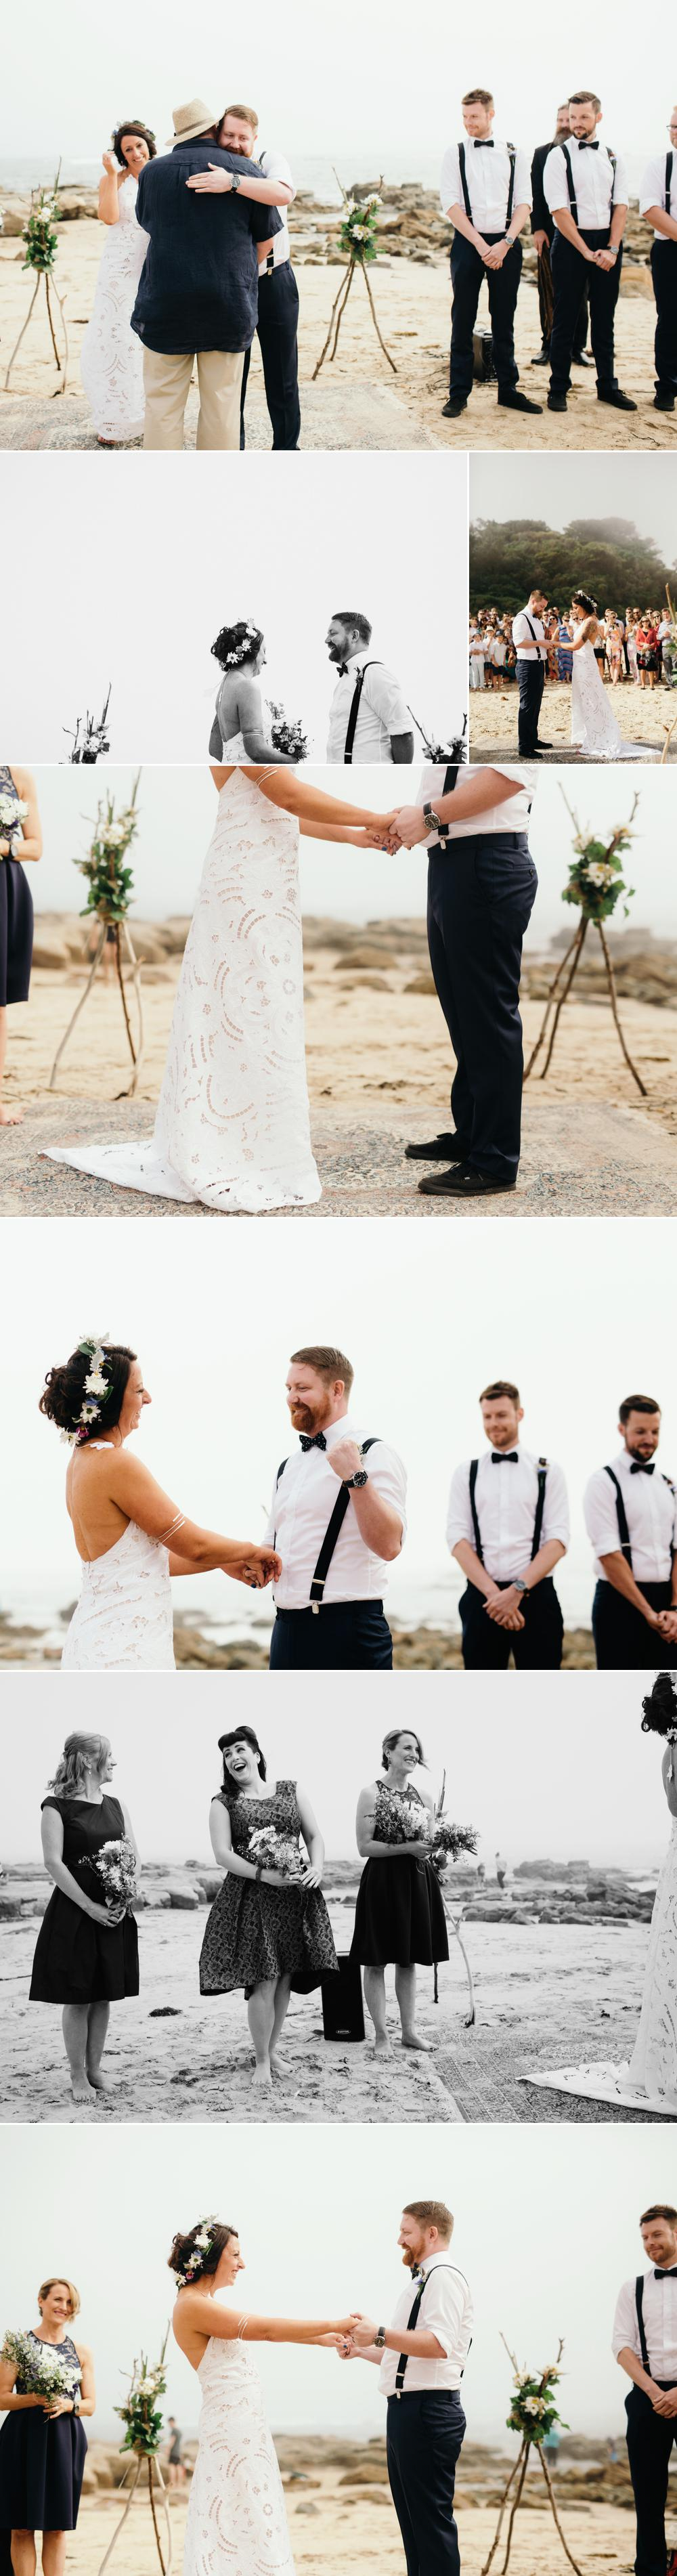 Serrin and Dave married 13